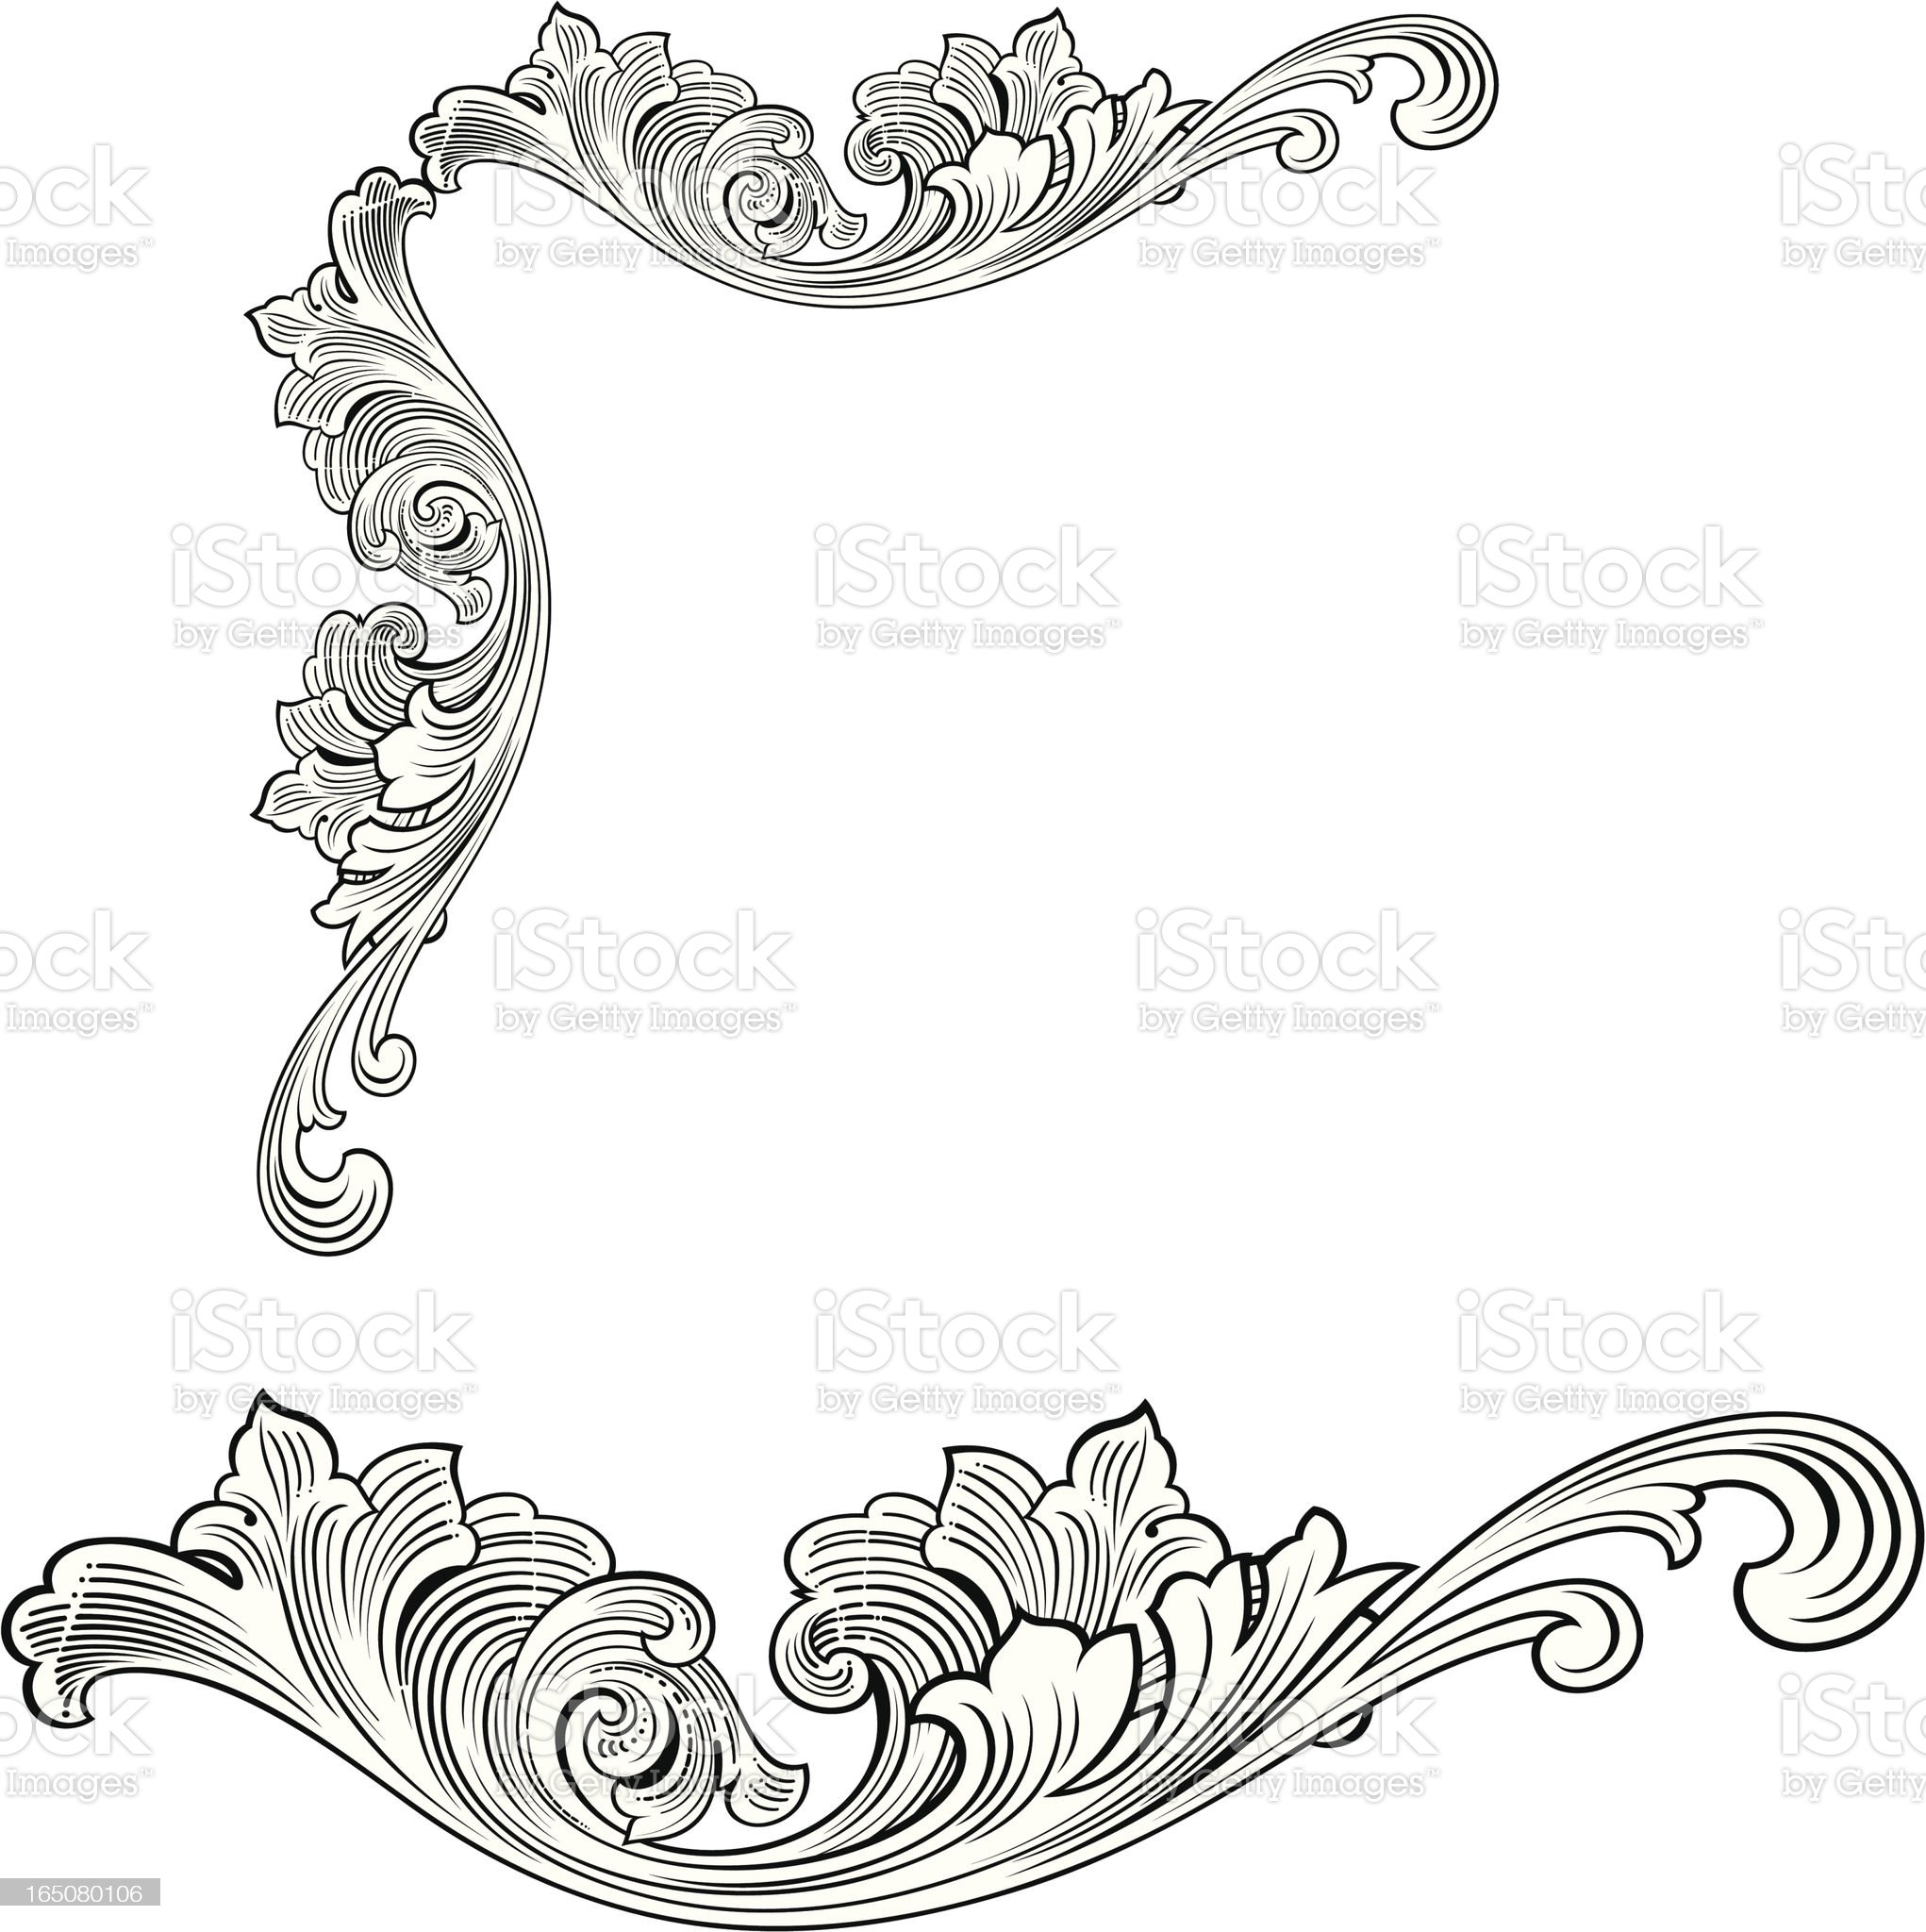 Fancy Corner and woodcut Scroll royalty-free stock vector art